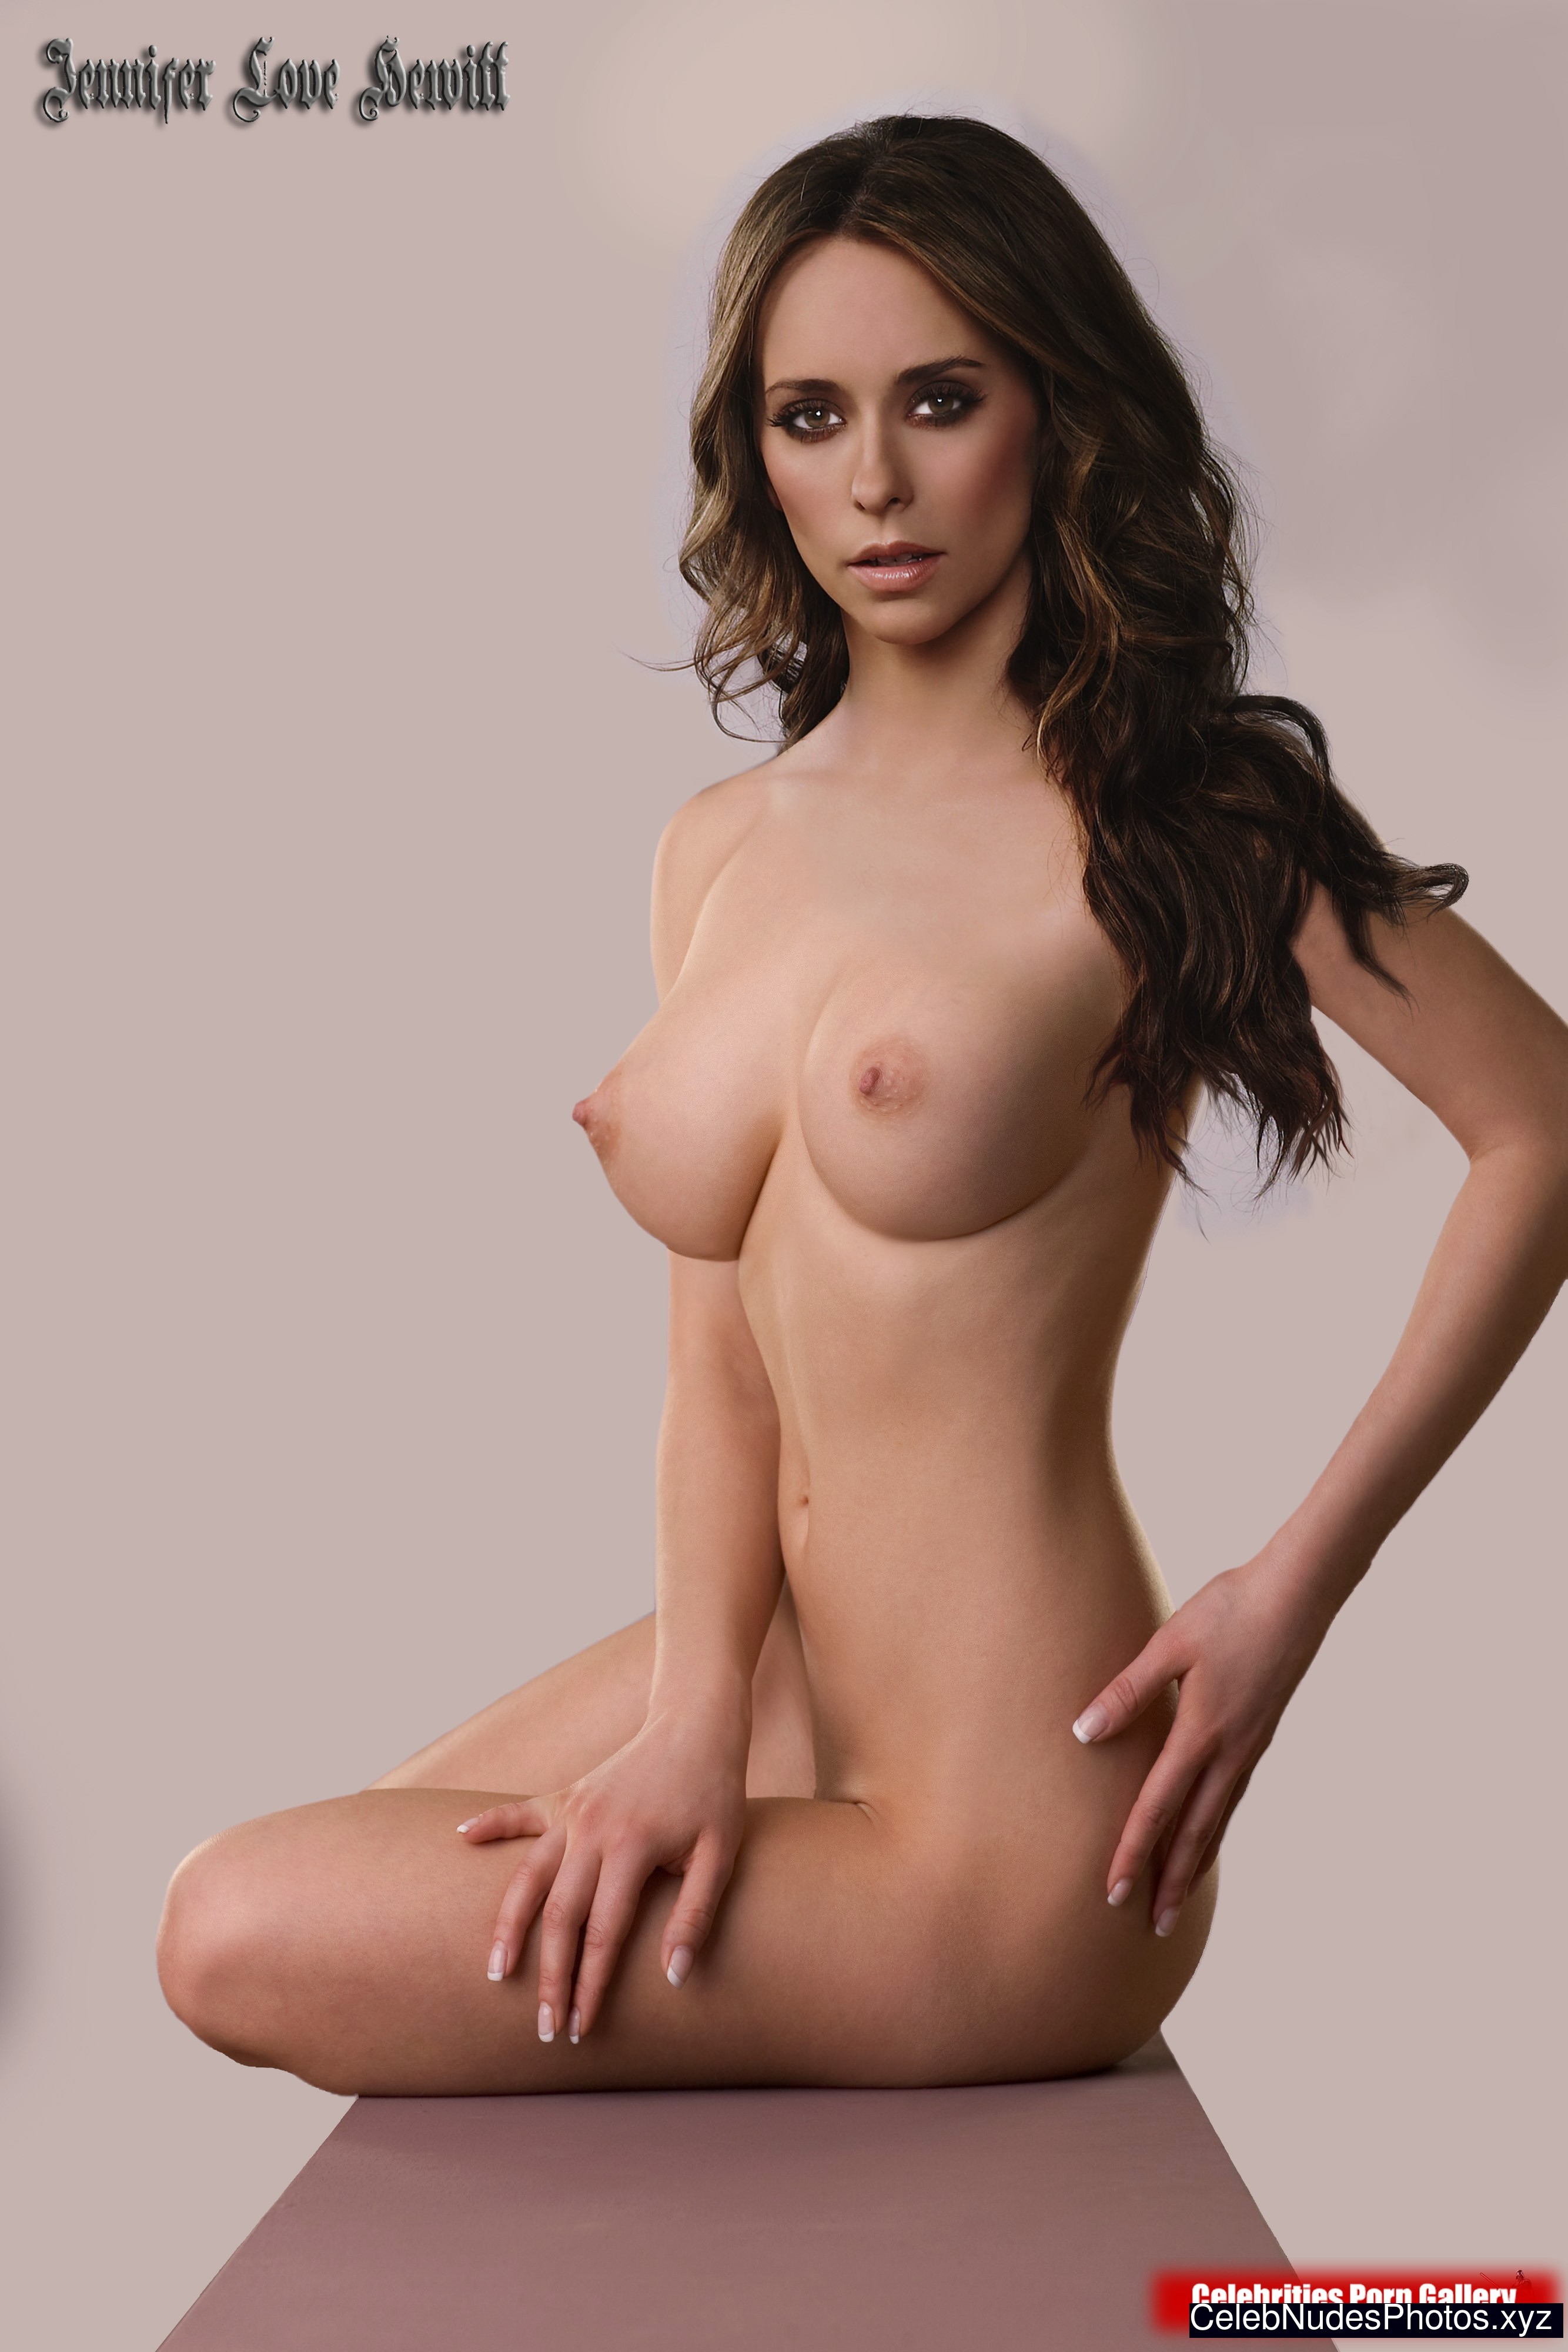 Jennifer Love Hewitt Celebrities Naked sexy 21